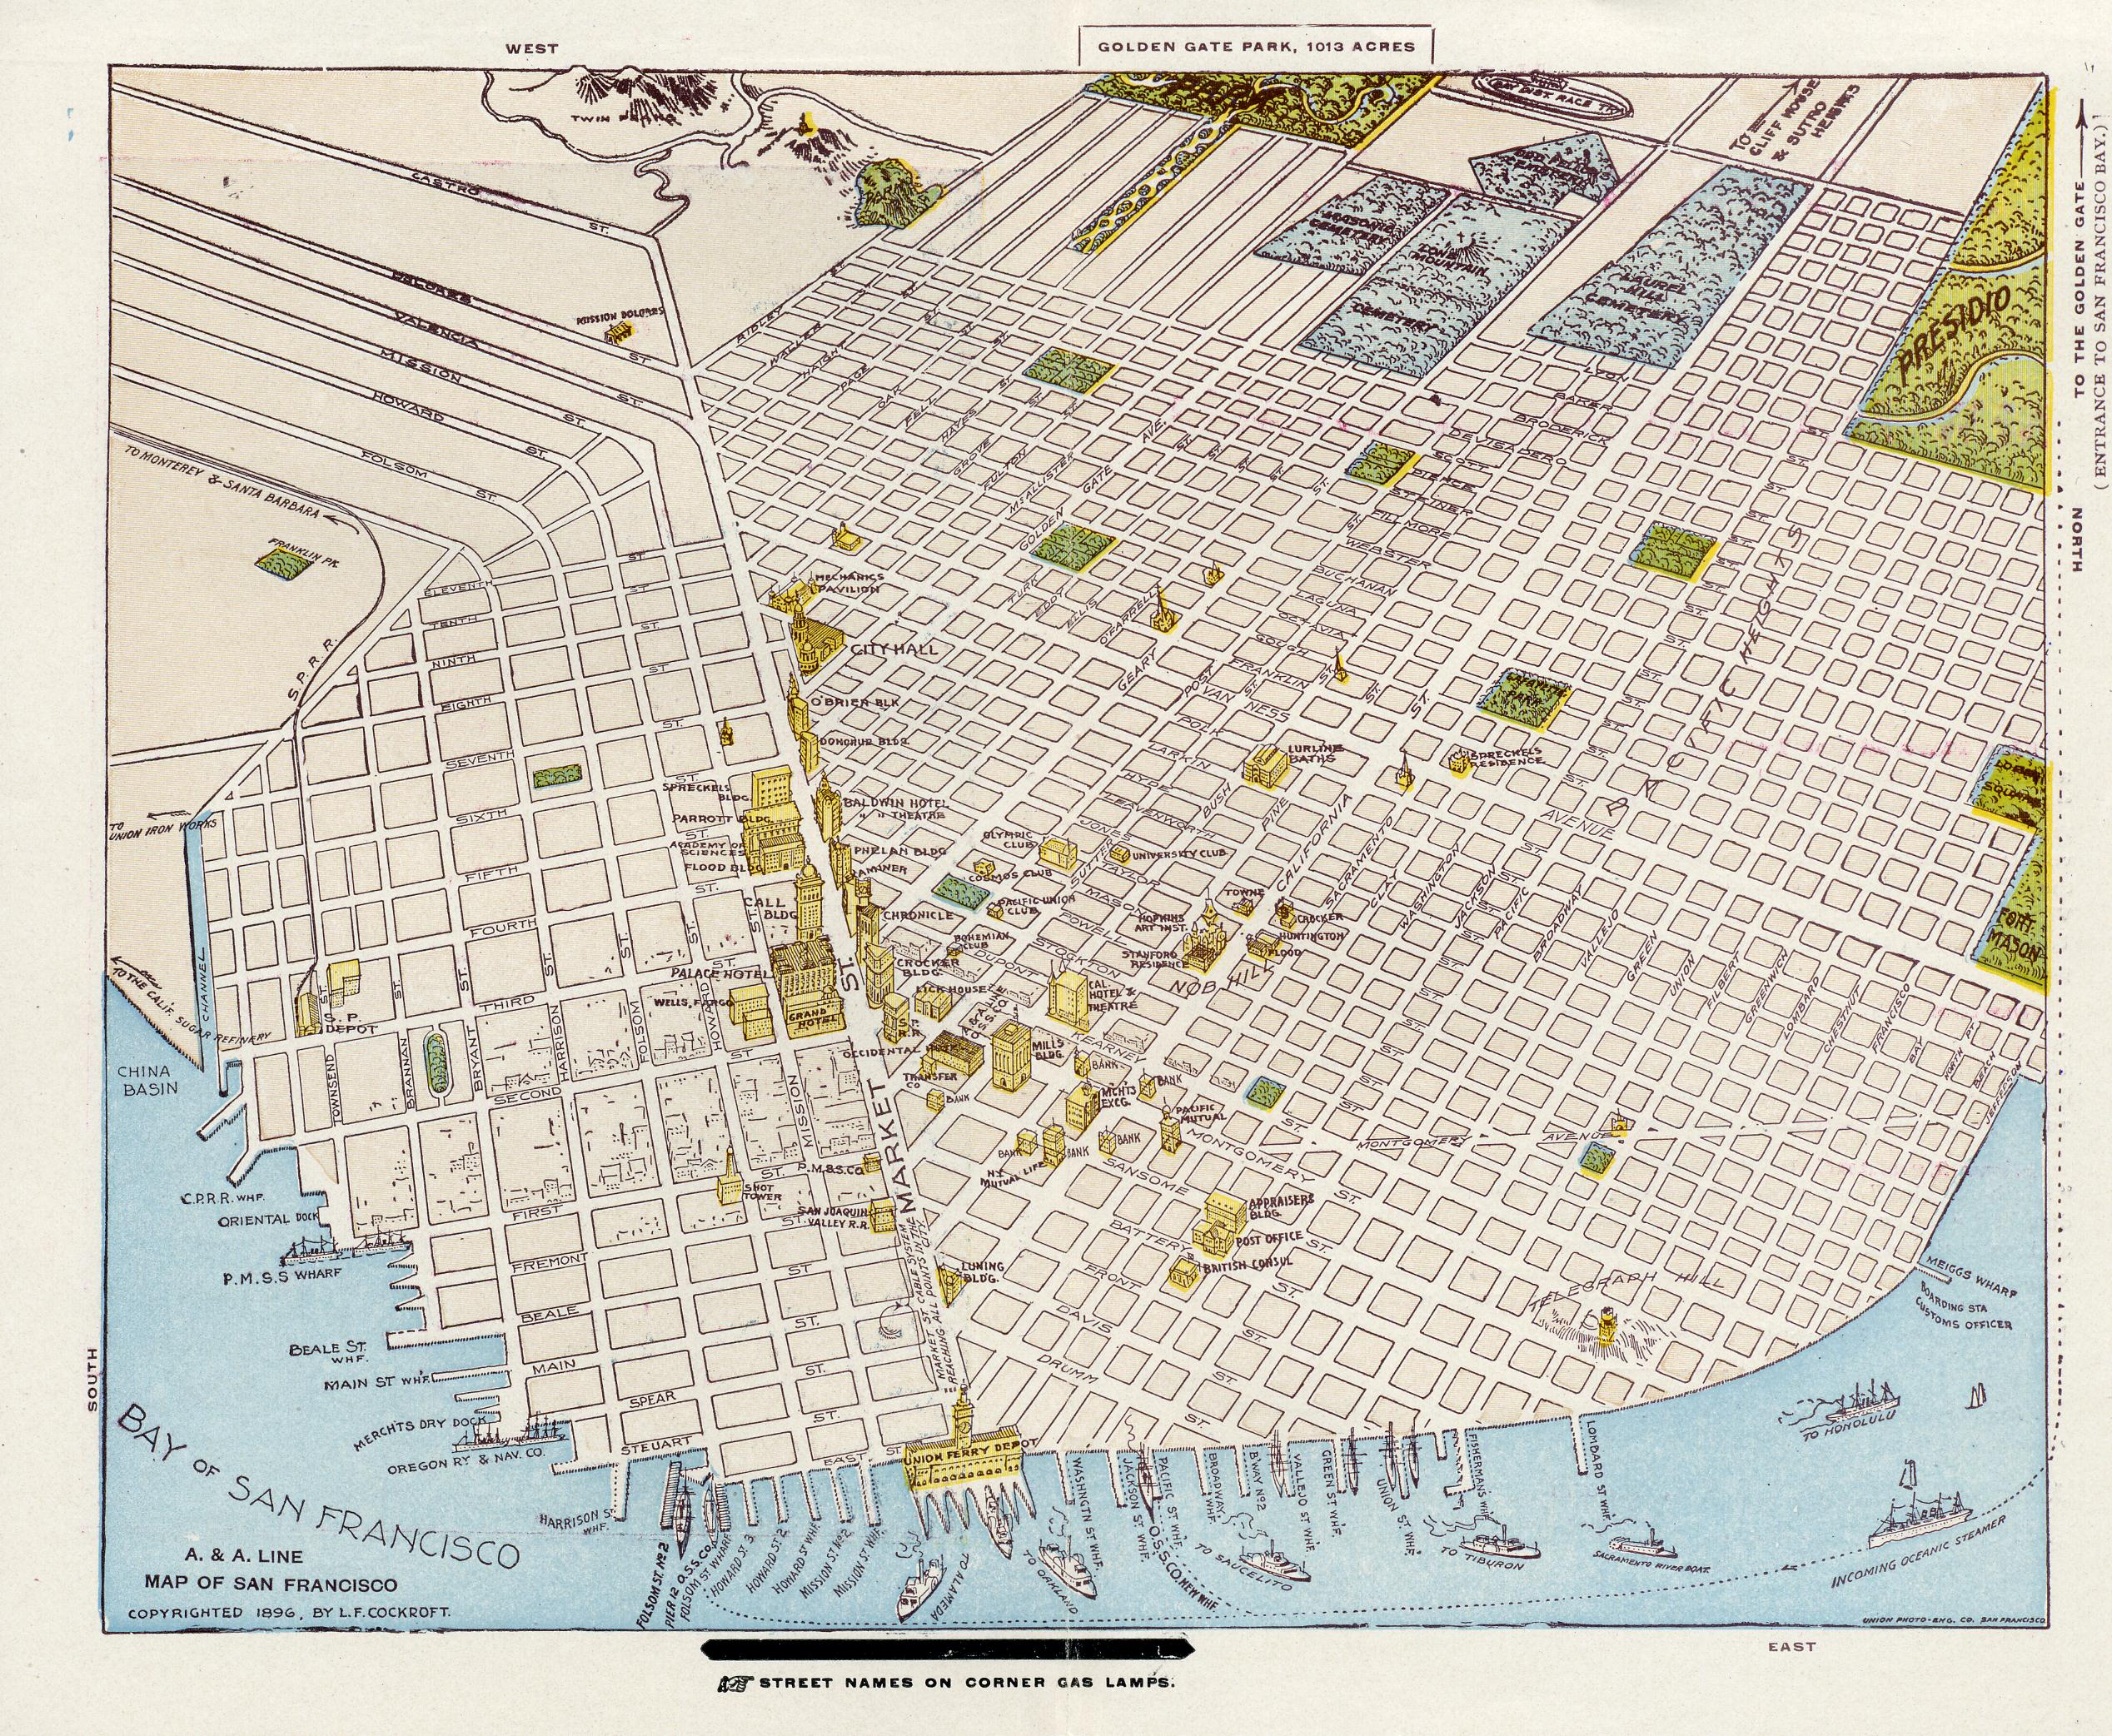 San Francisco Perspective Map San Francisco CA US  Mappery - 1896 map of us